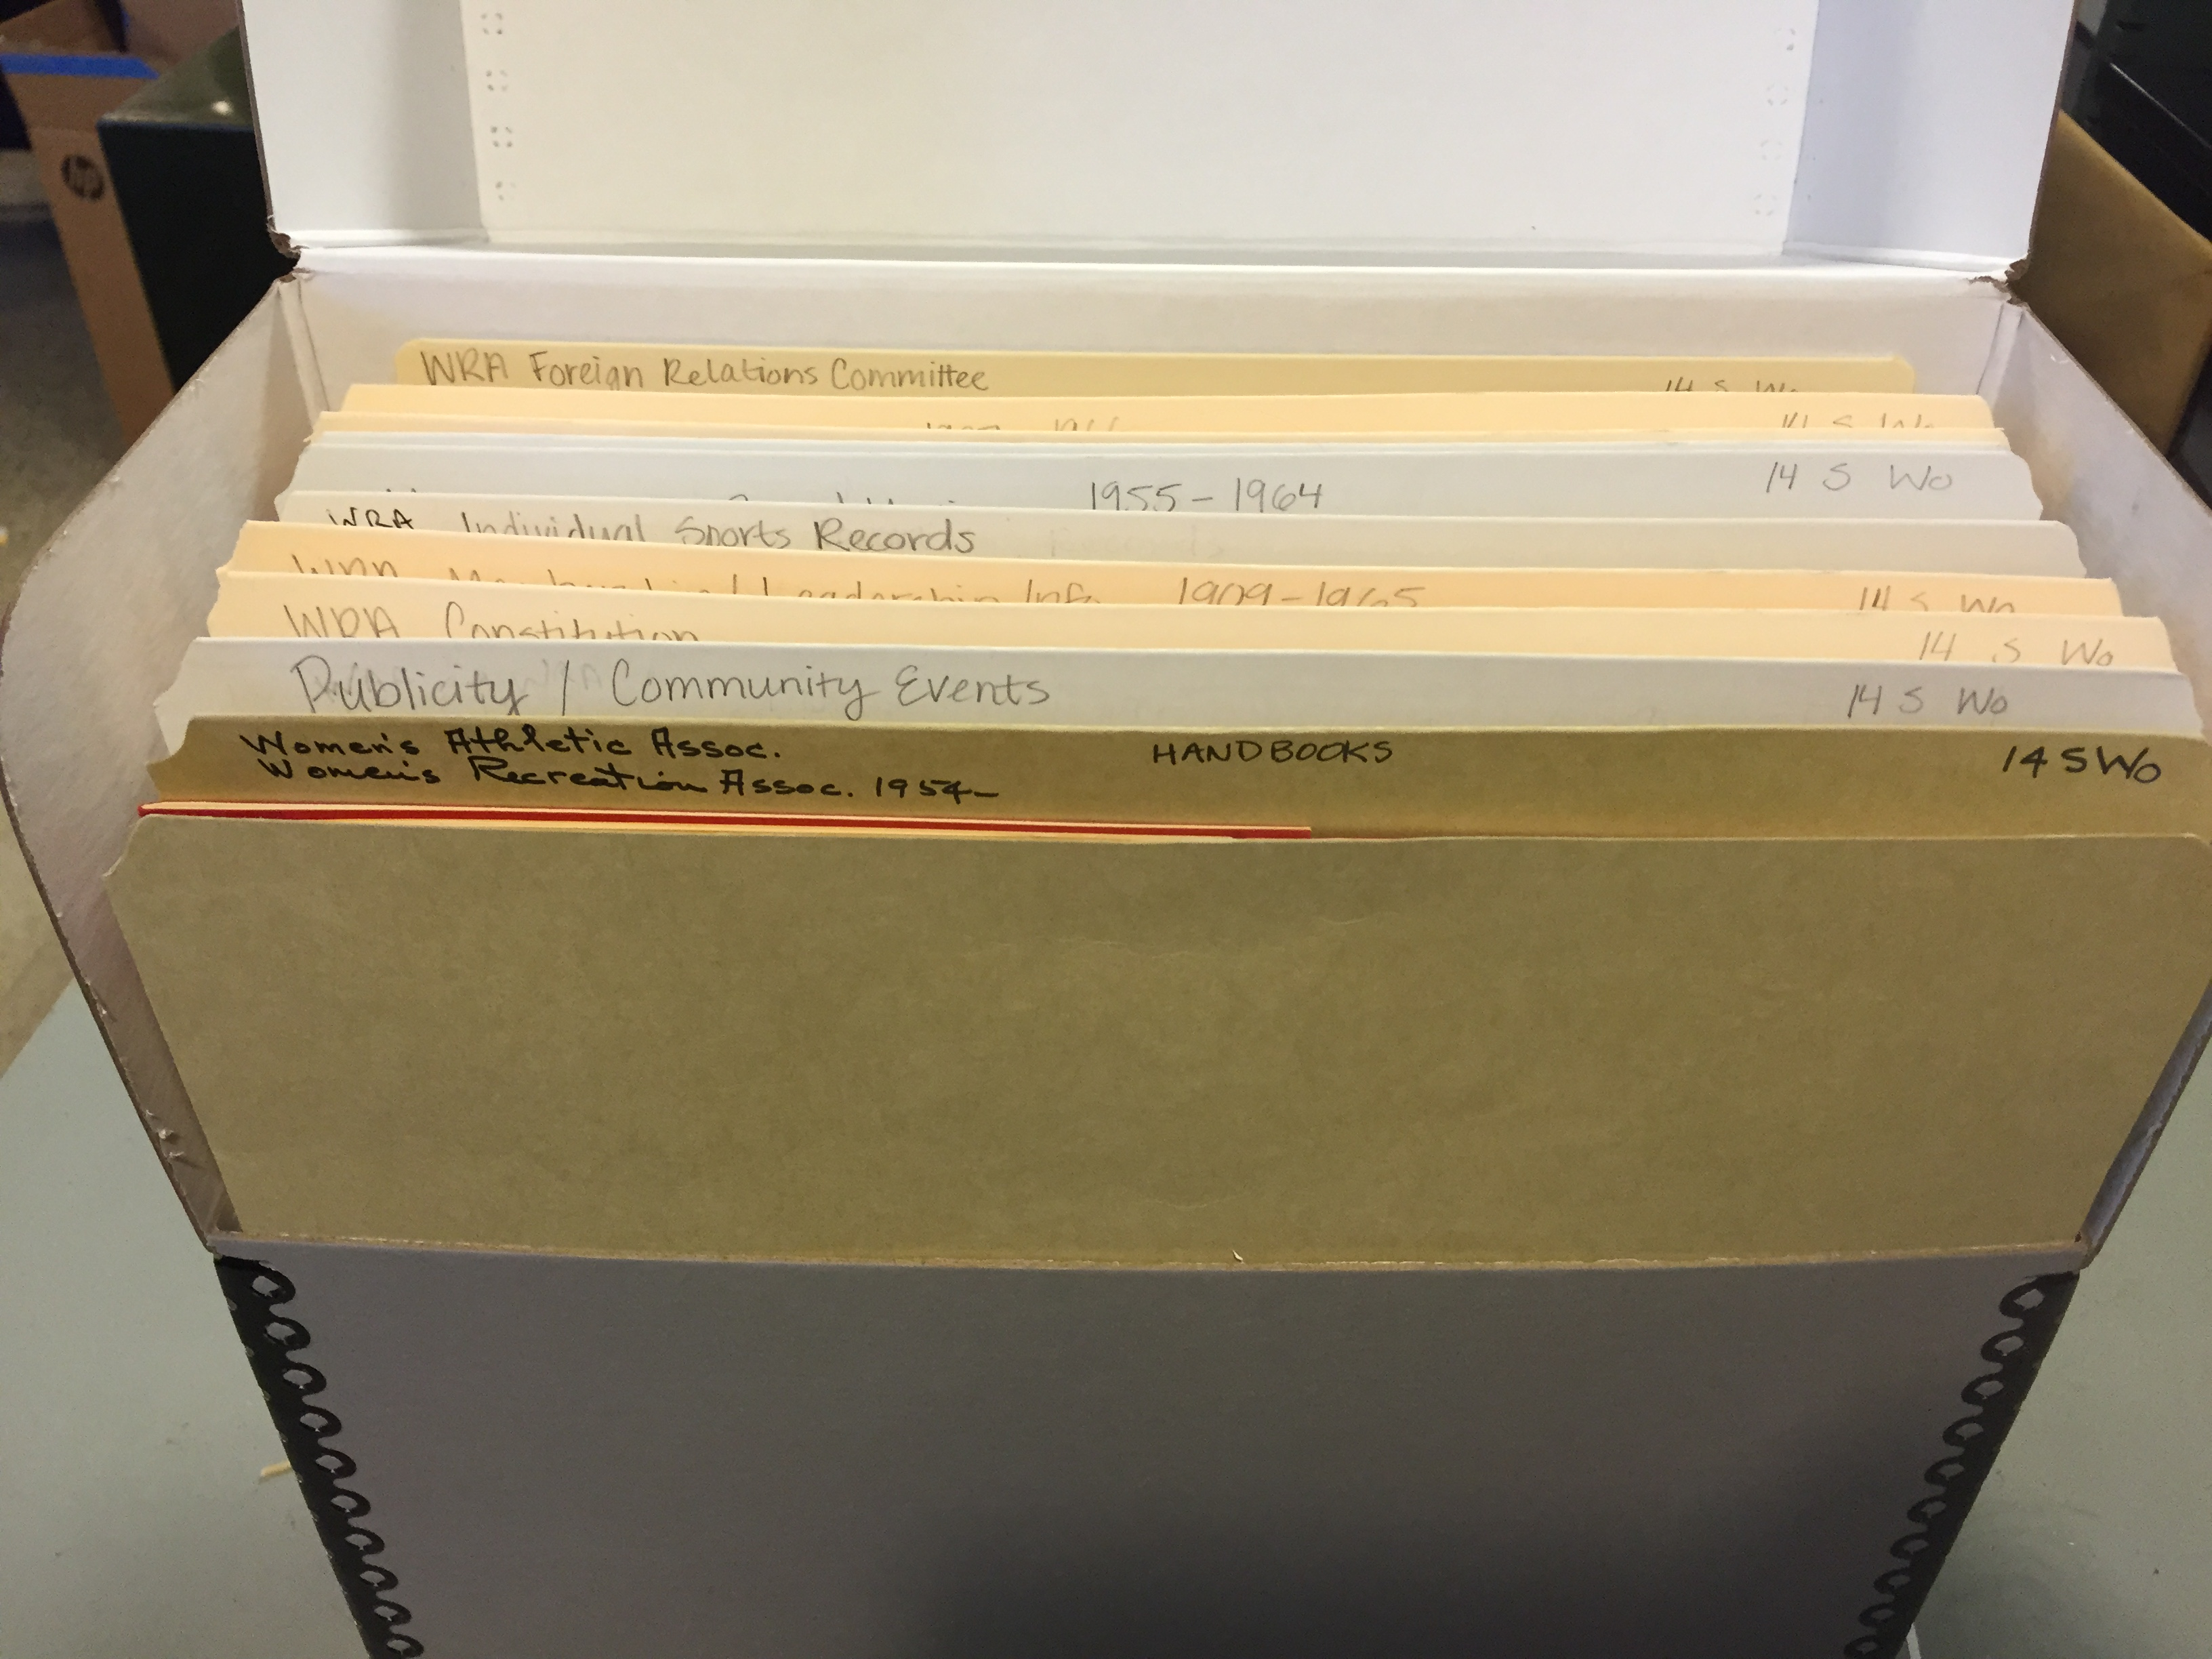 picture of an archival box and folders